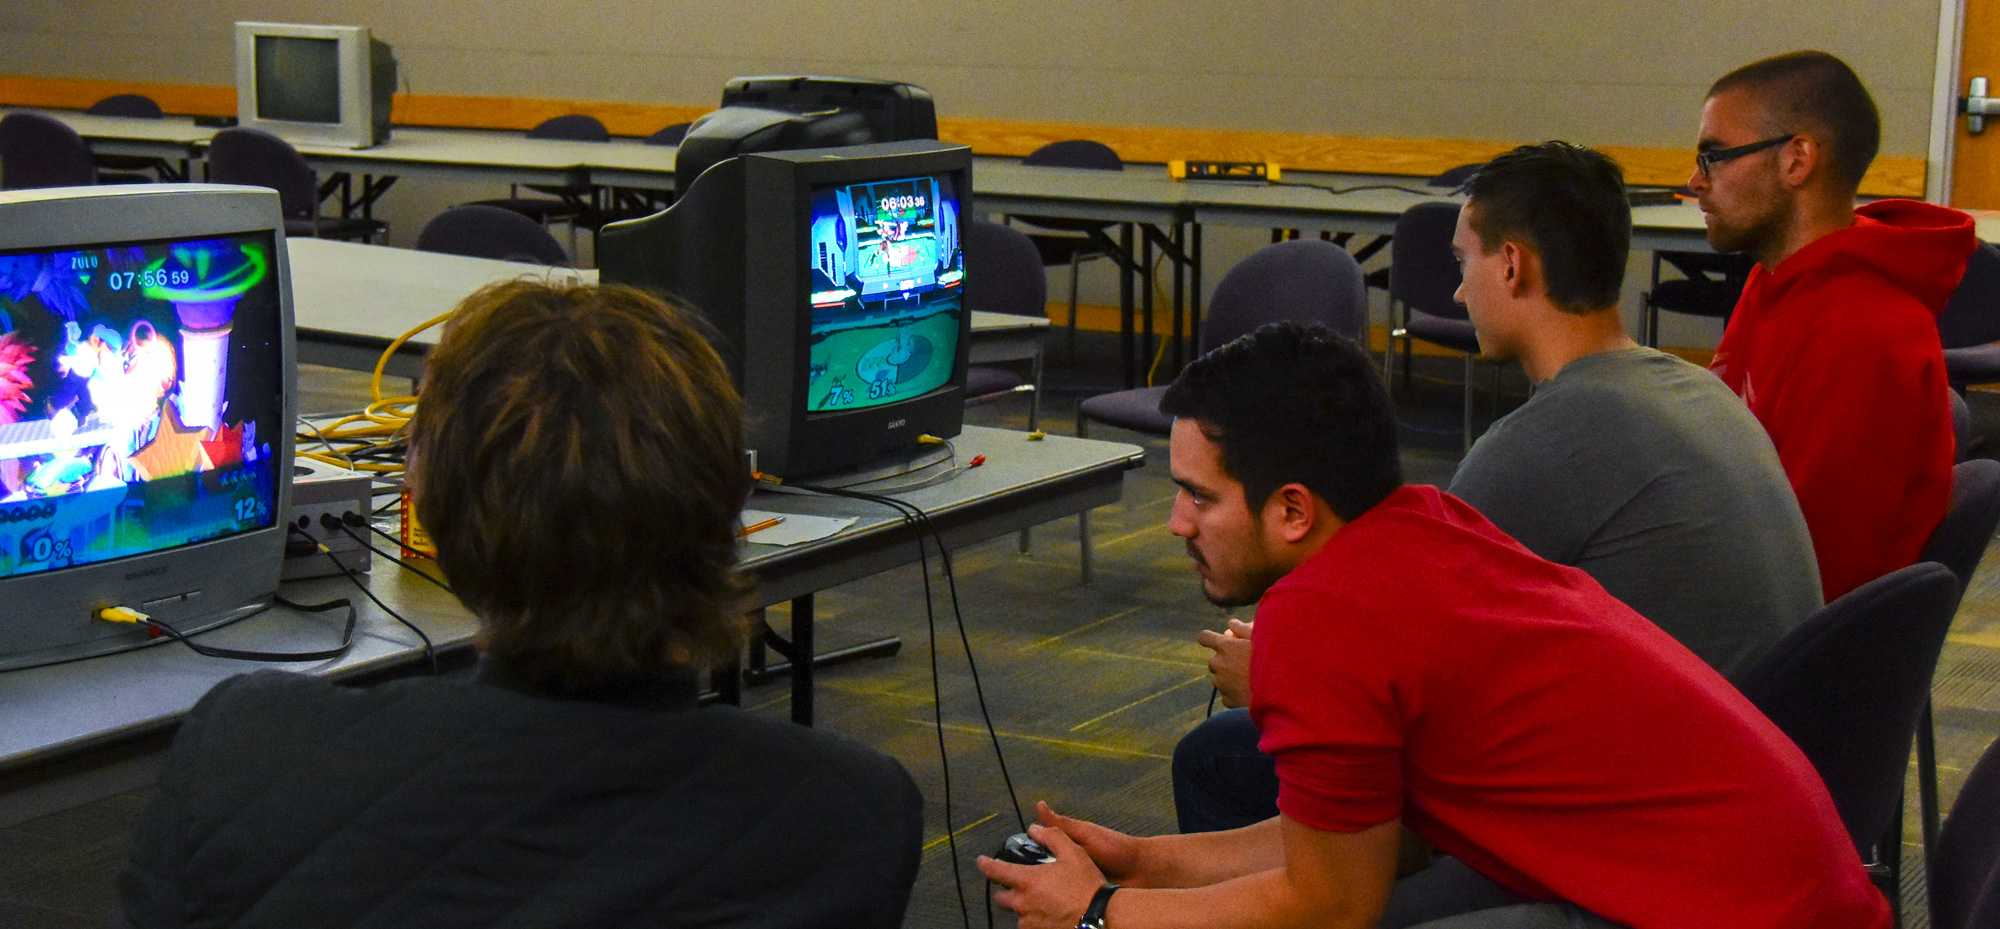 Gaming Club welcomes all during Gamefest